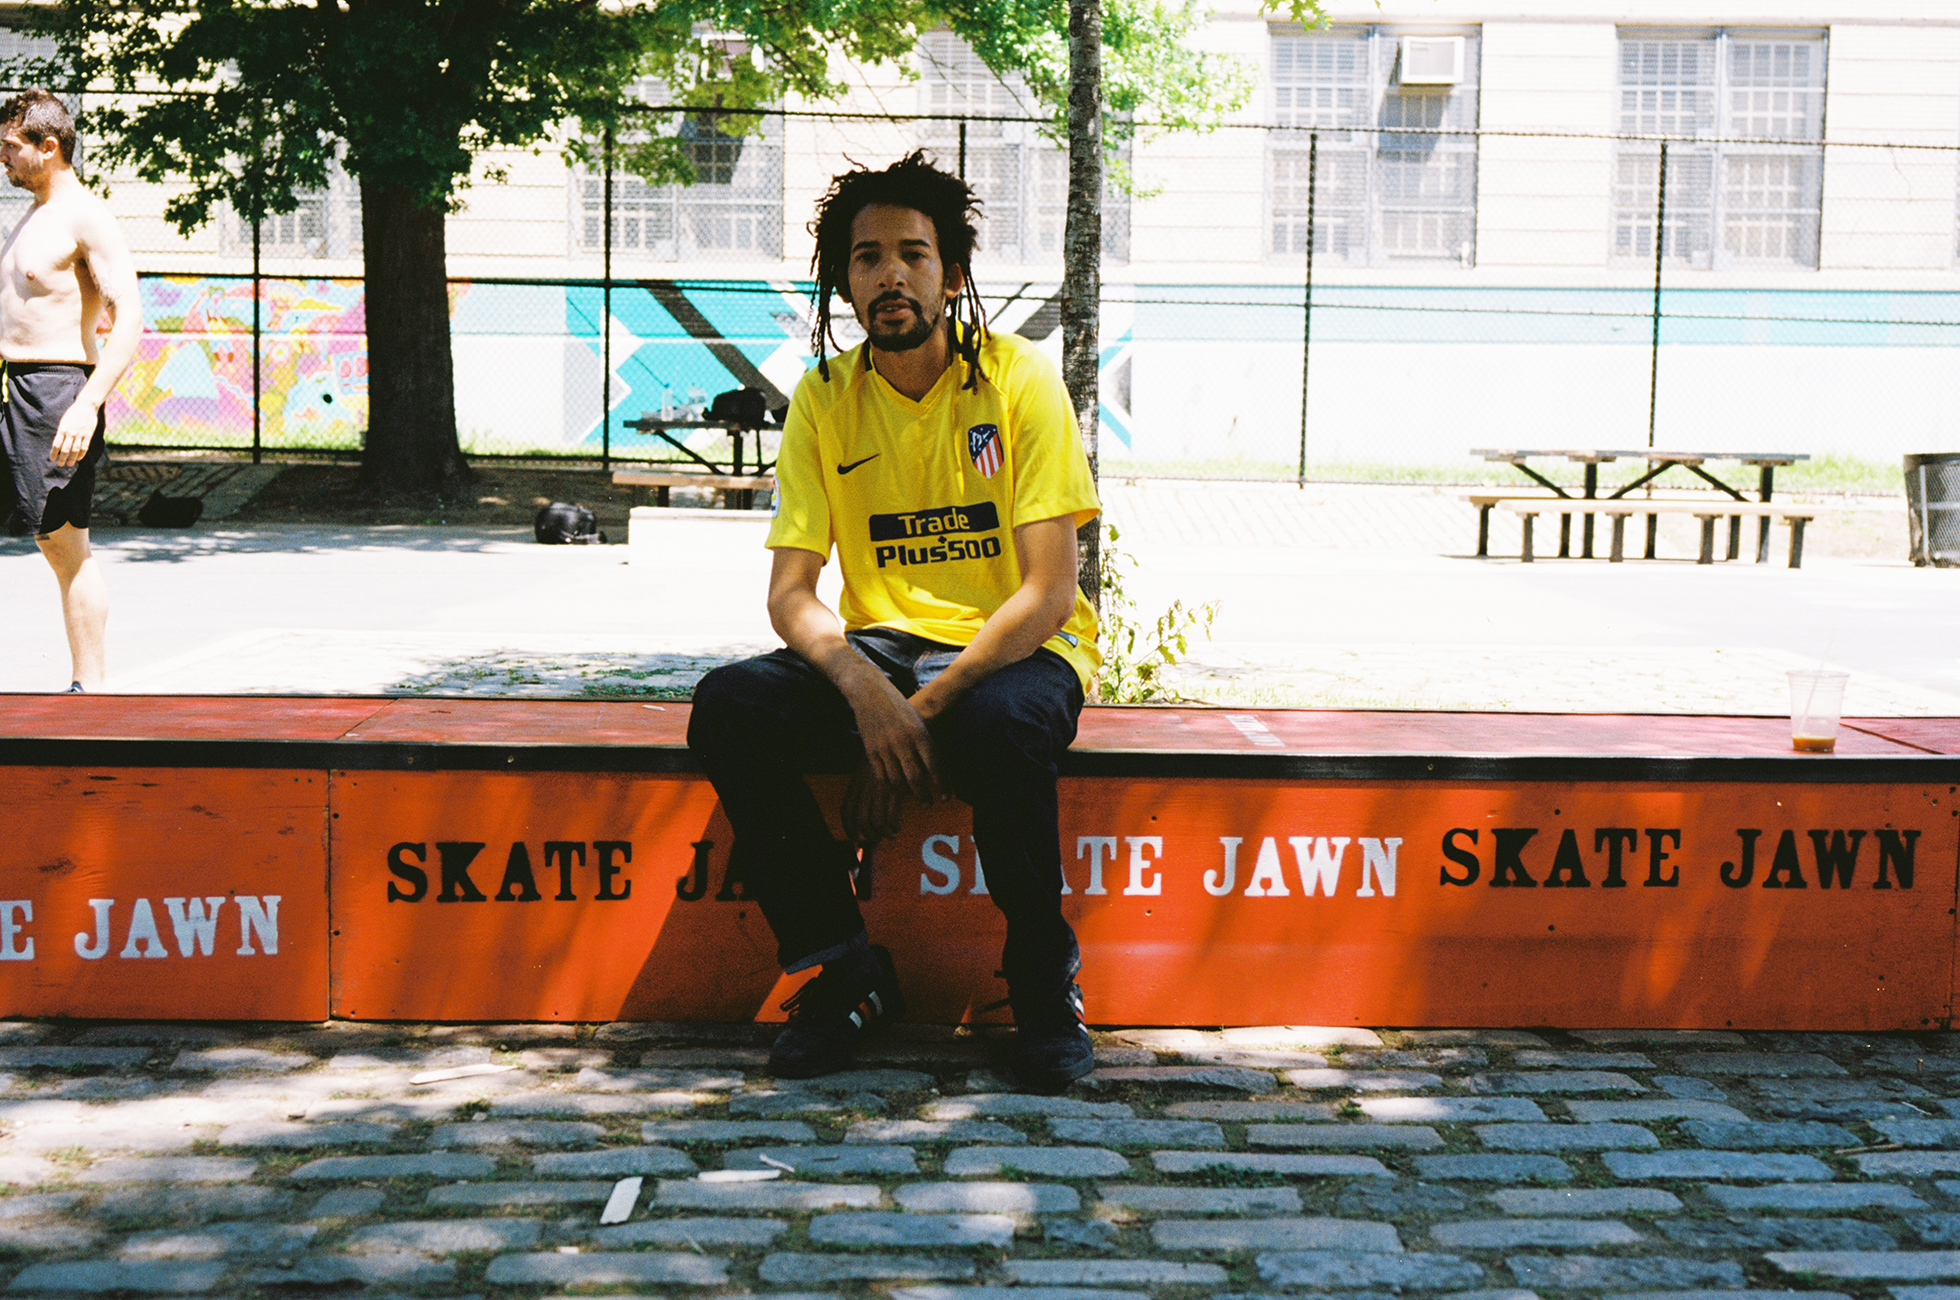 Talking Skate Jawn magazine with Marcus Waldron